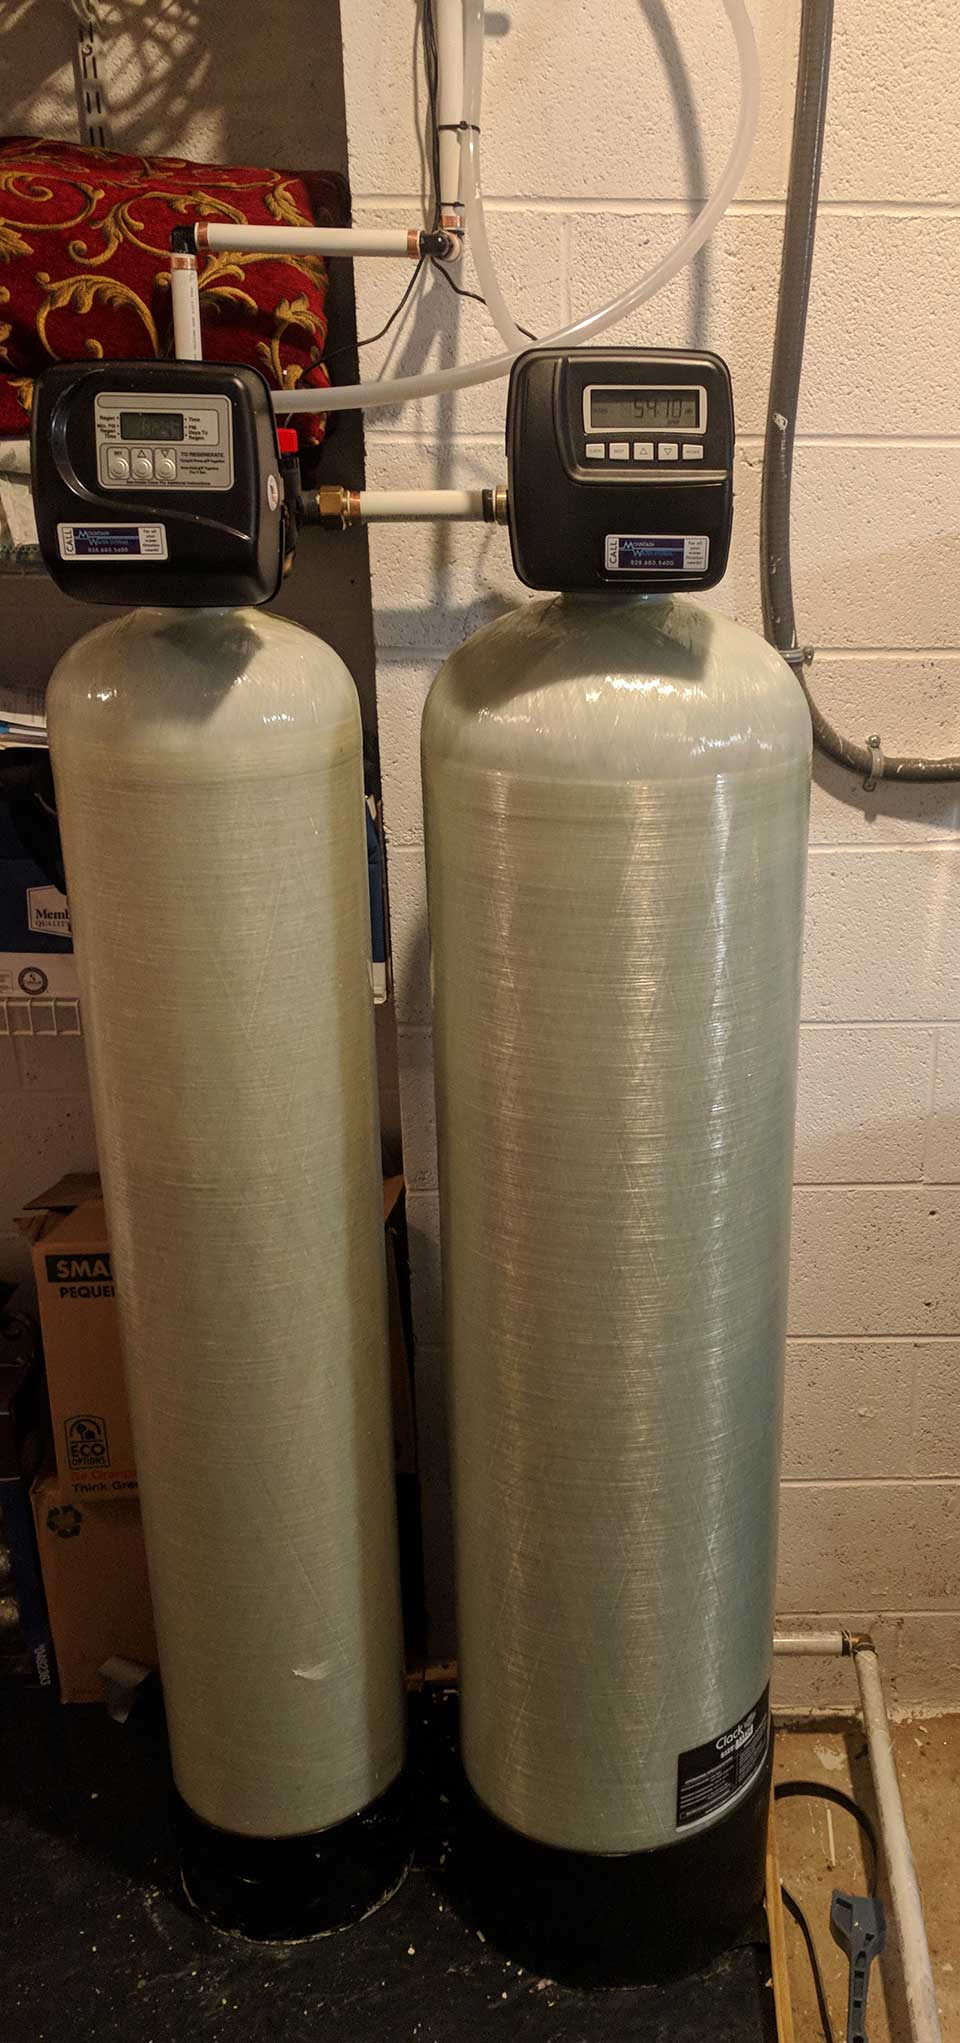 Customized Carbon Filter Built To Remove Sulfur Smell